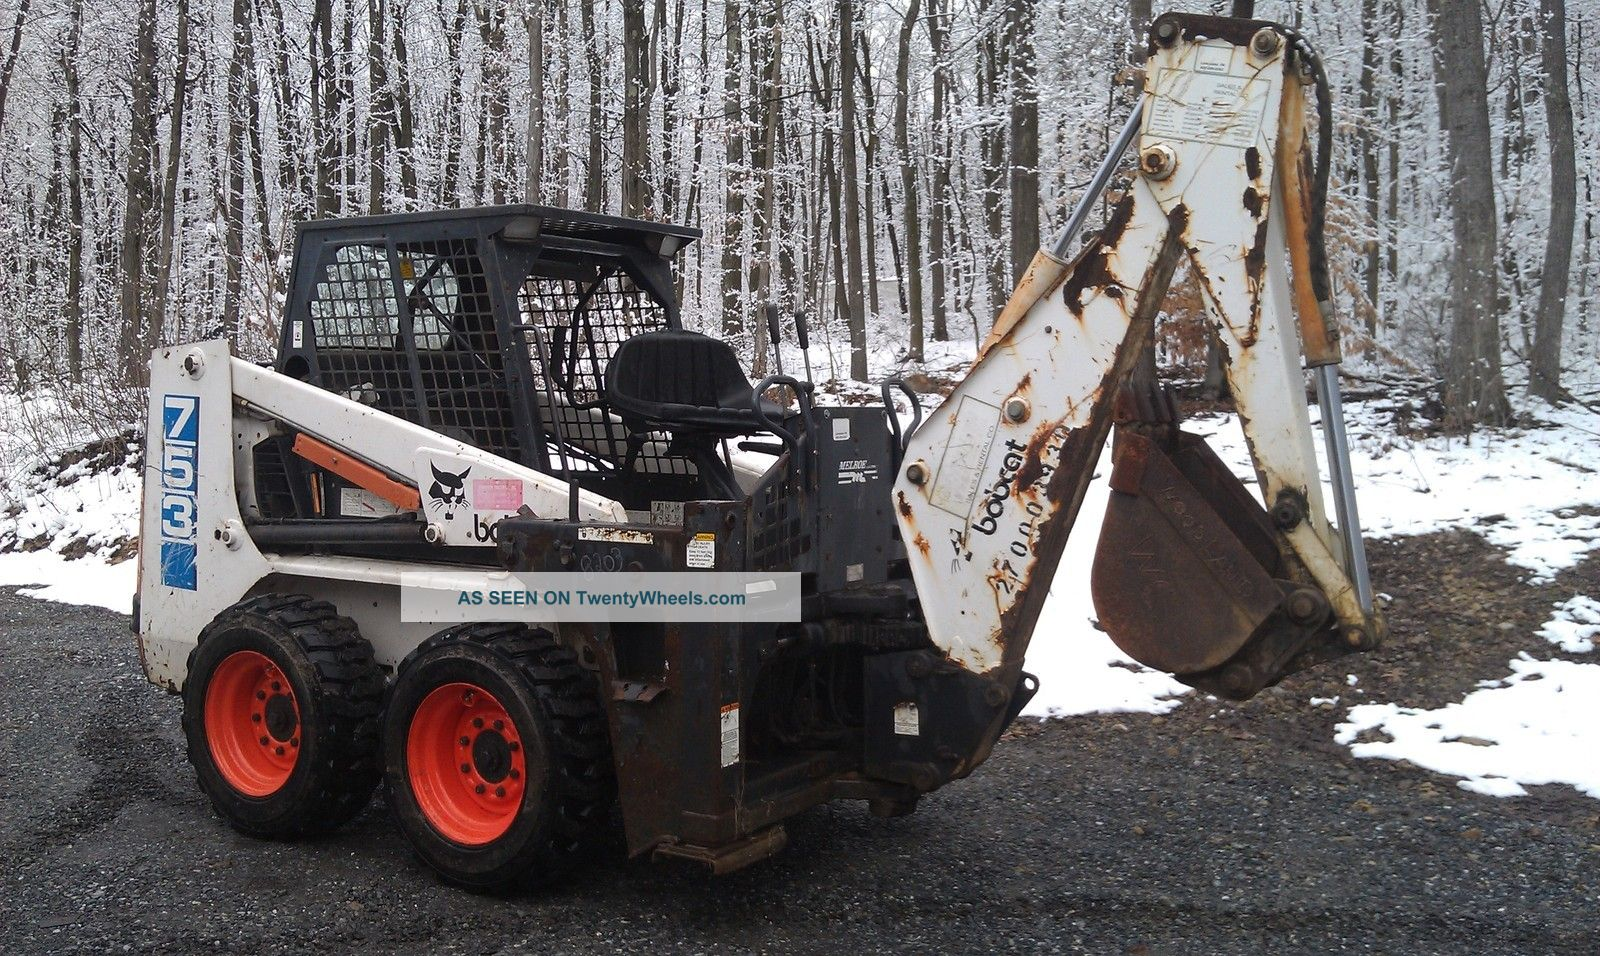 Bobcat 753 Skid Steer Loader With 709 Backhoe Attachment